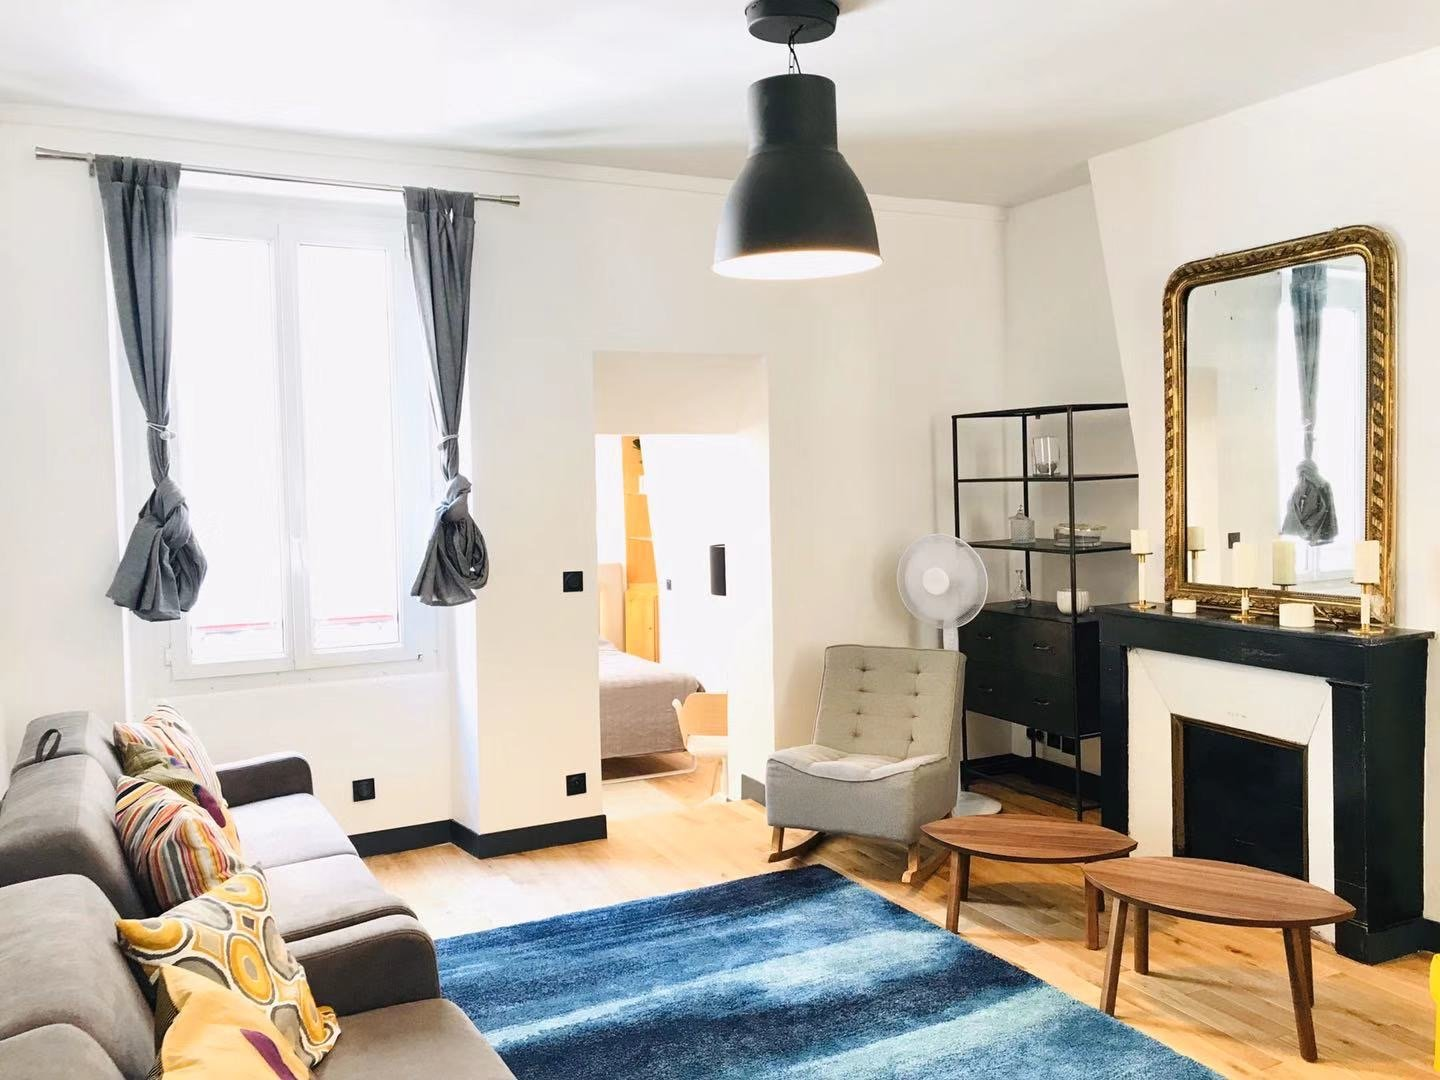 Vente appartement FAUBOURG SAINT HONORÉ / ELYSÉE